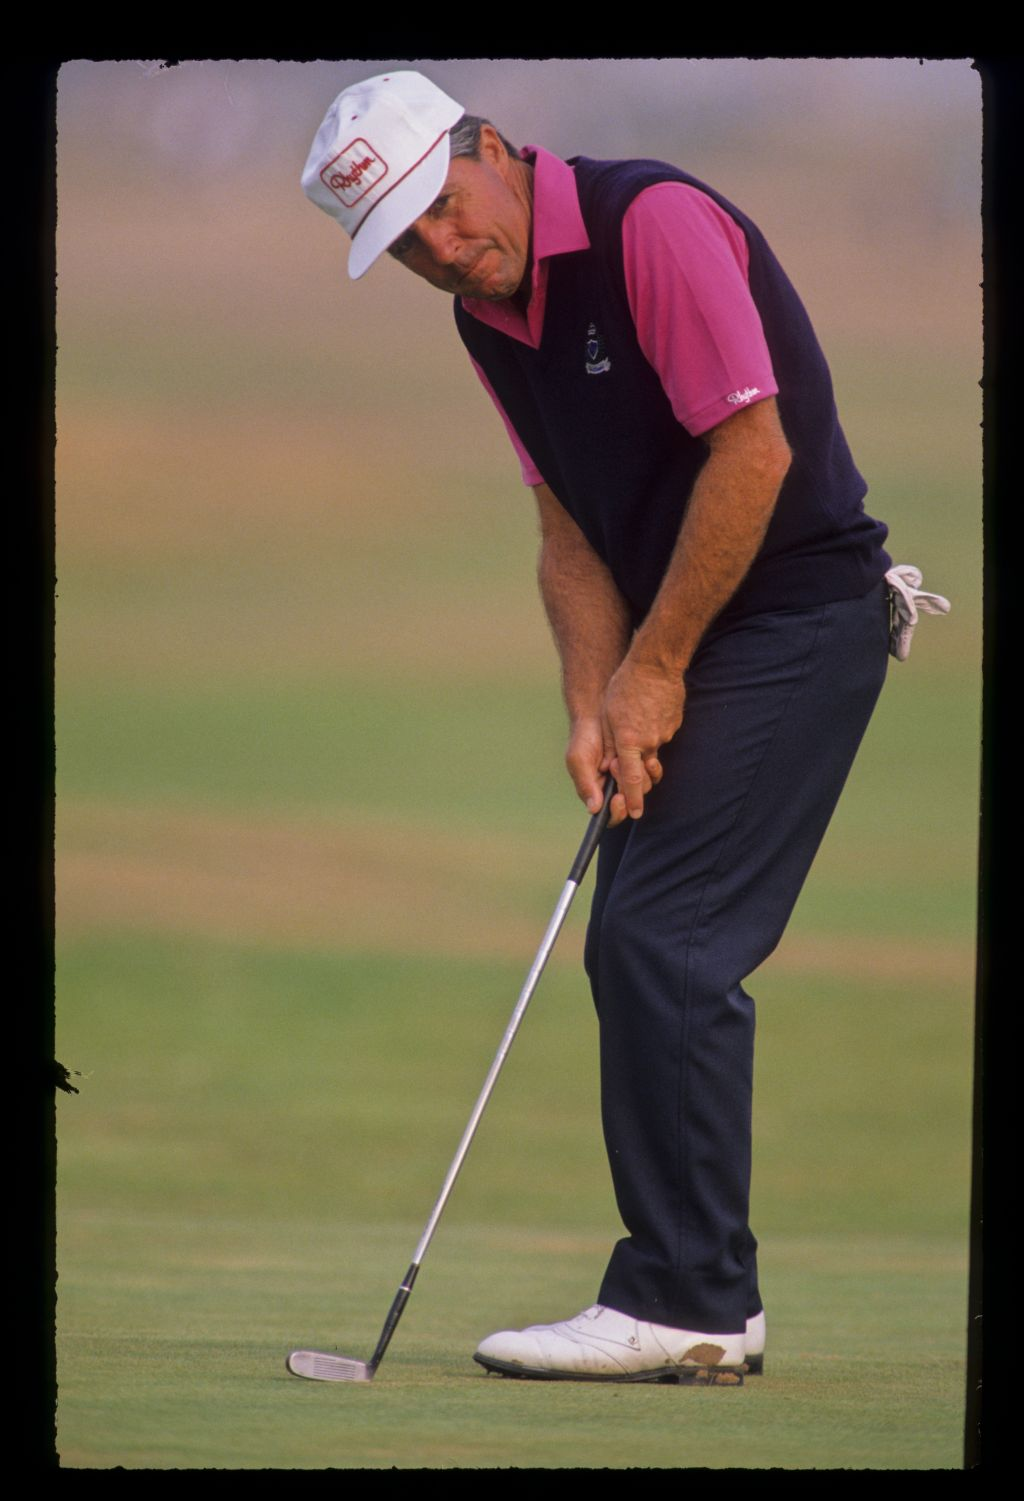 Gary Player putting during the 1989 Open Championship